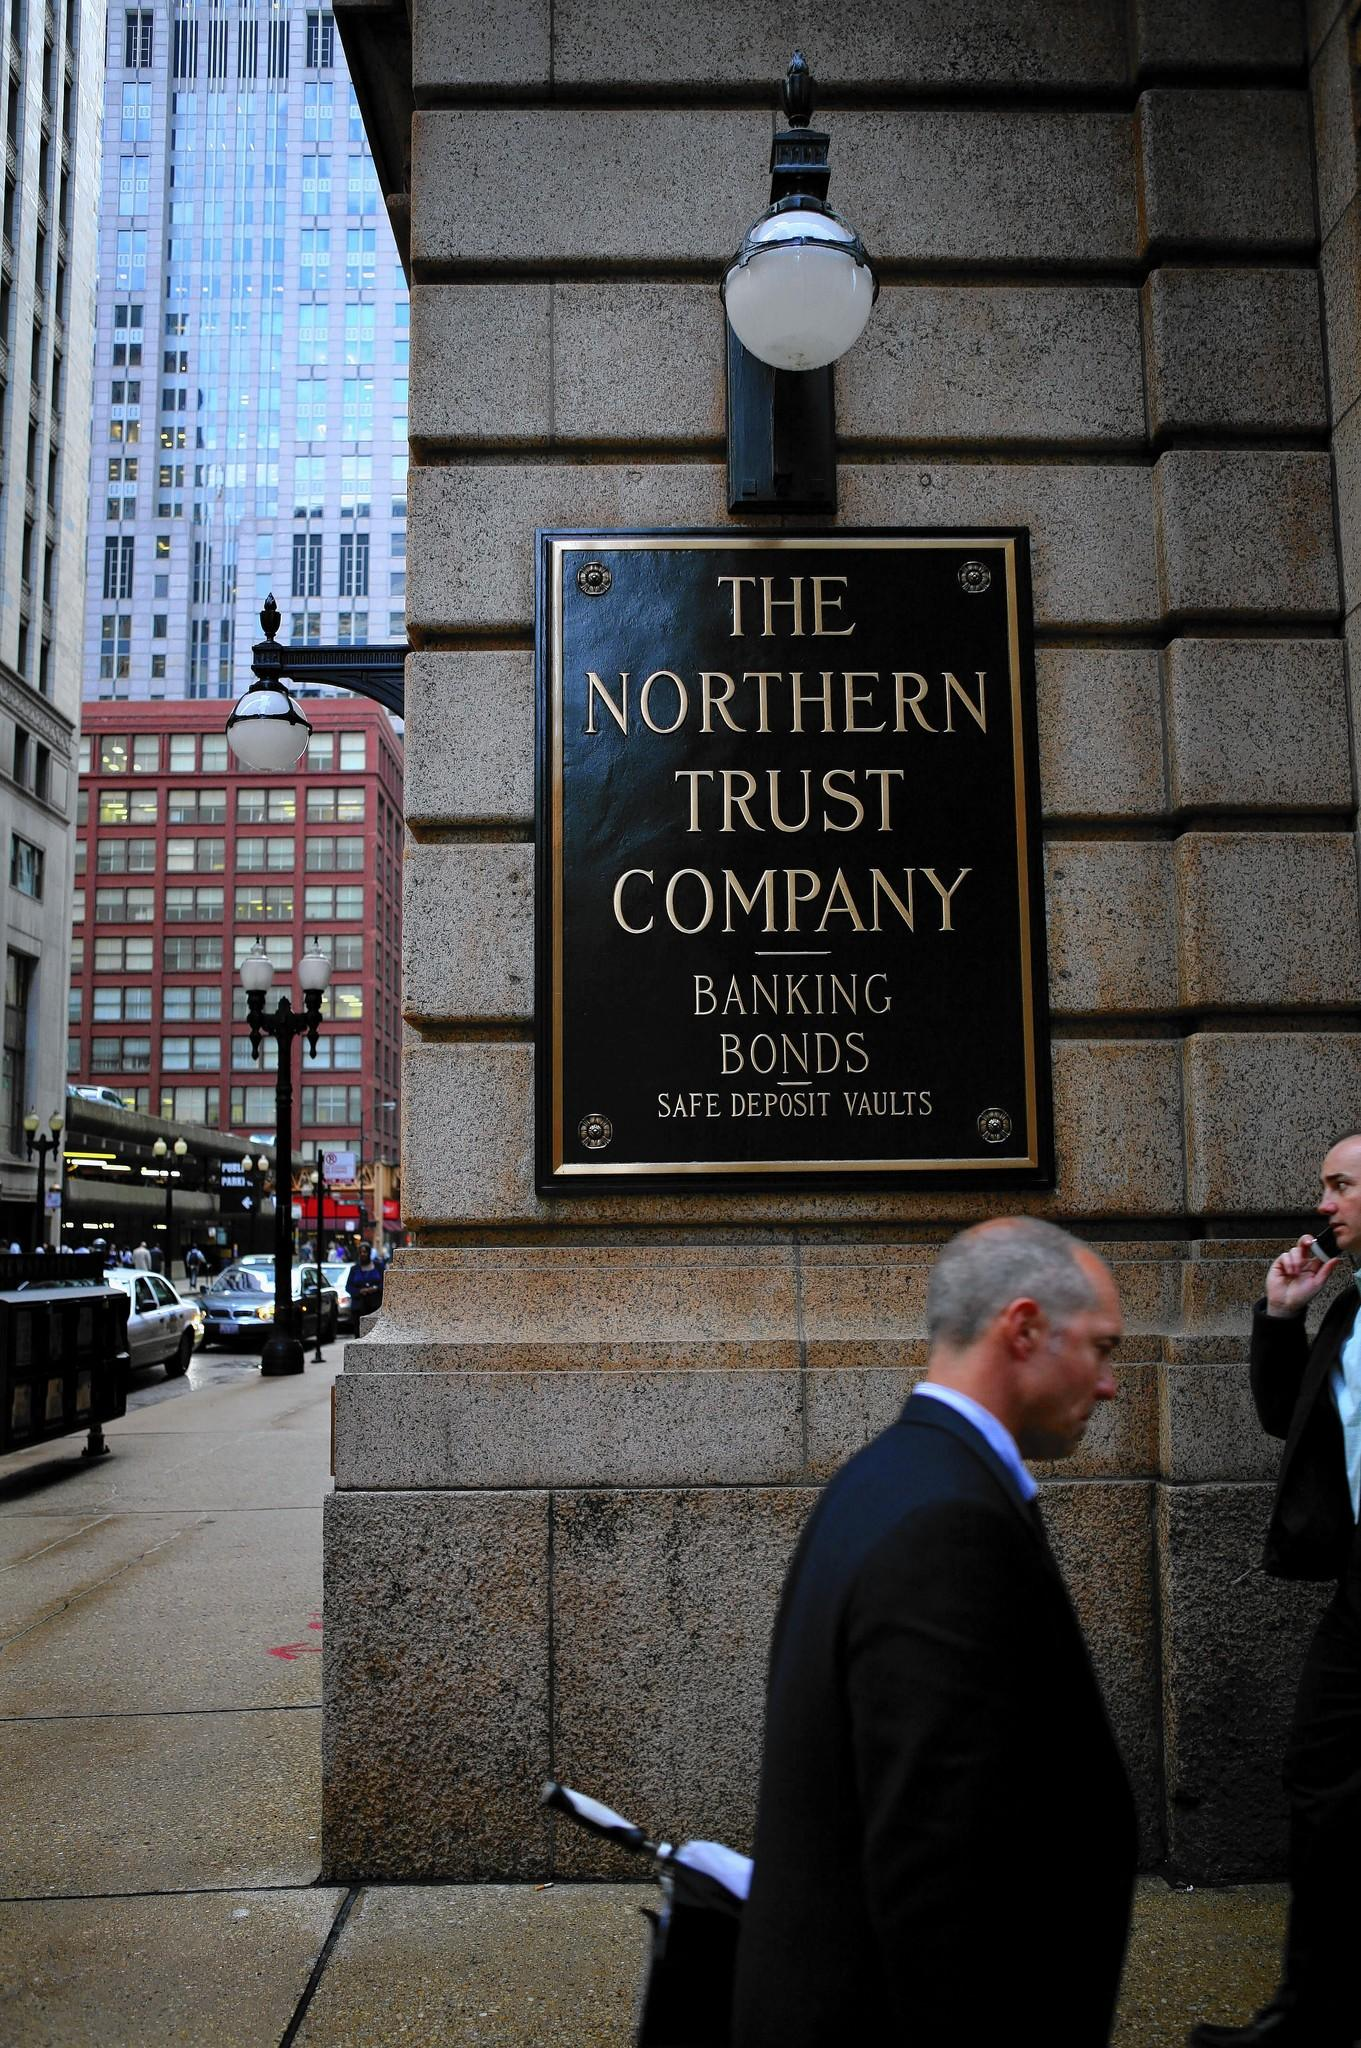 Among 22 banks, Northern Trust's 92 percent payout ratio is eclipsed only by Goldman Sachs' and State Street's.